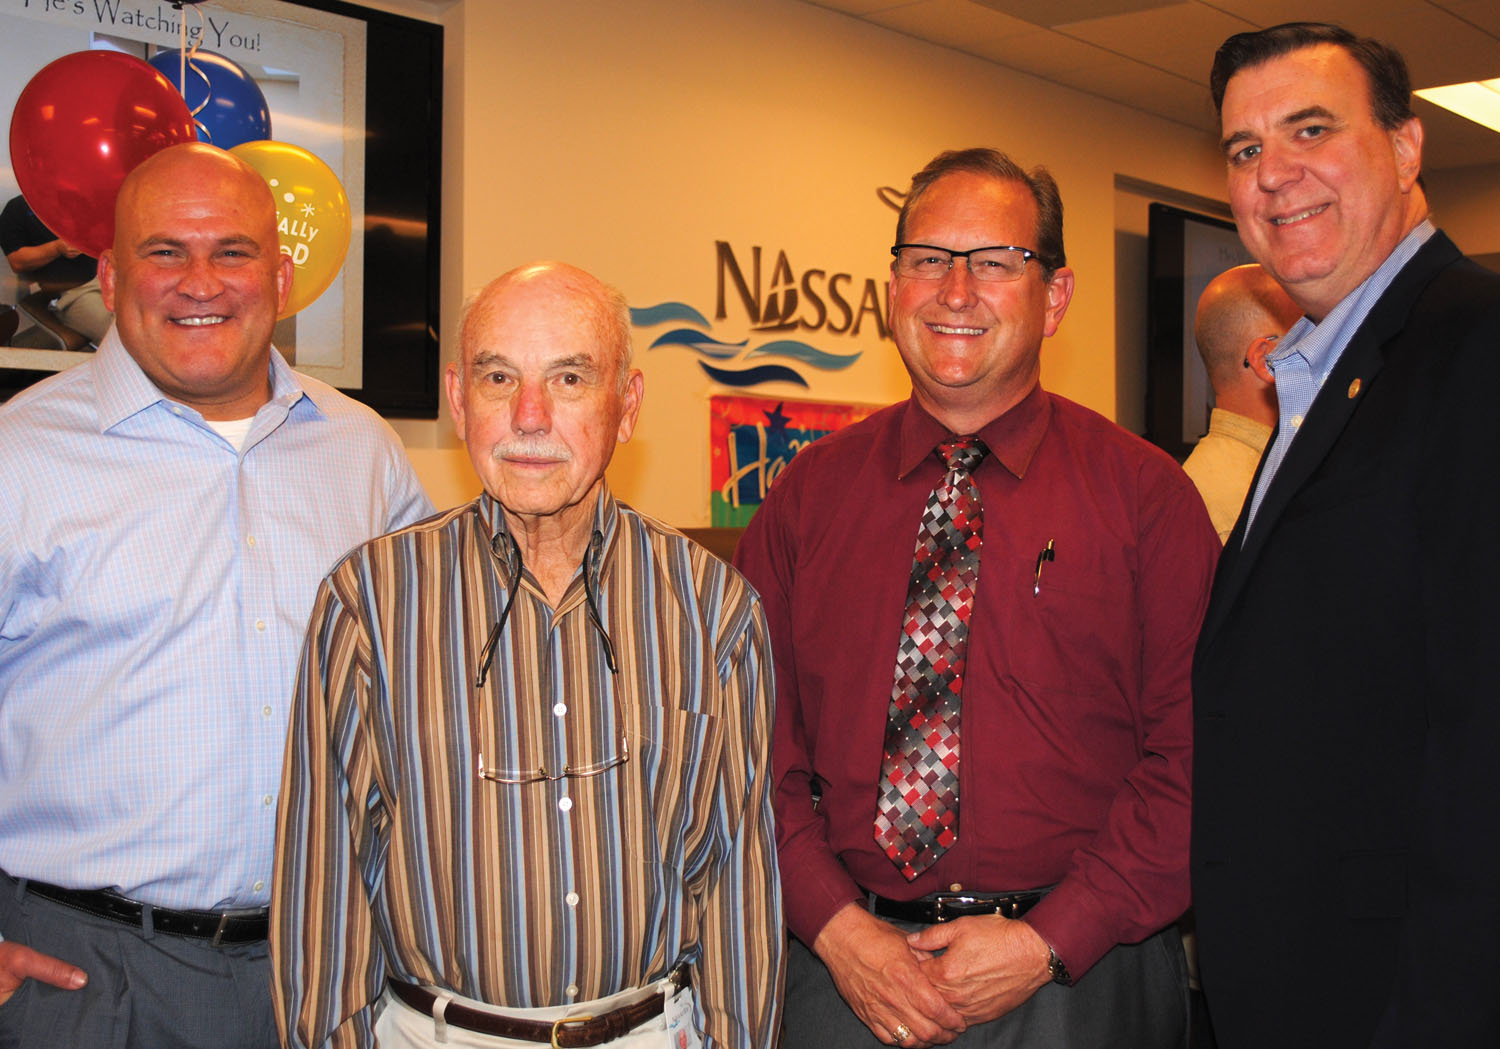 Former Nassau Bay City Manager Chris Reed, City Councilman Bob Warters, Constable Phil Sandlin and State Rep. Dennis Paul, from left, were among the hundreds who stopped by to say thank you to retiring Police Chief Joe Cashiola for his many years of work at farewell party the city hosted for him.